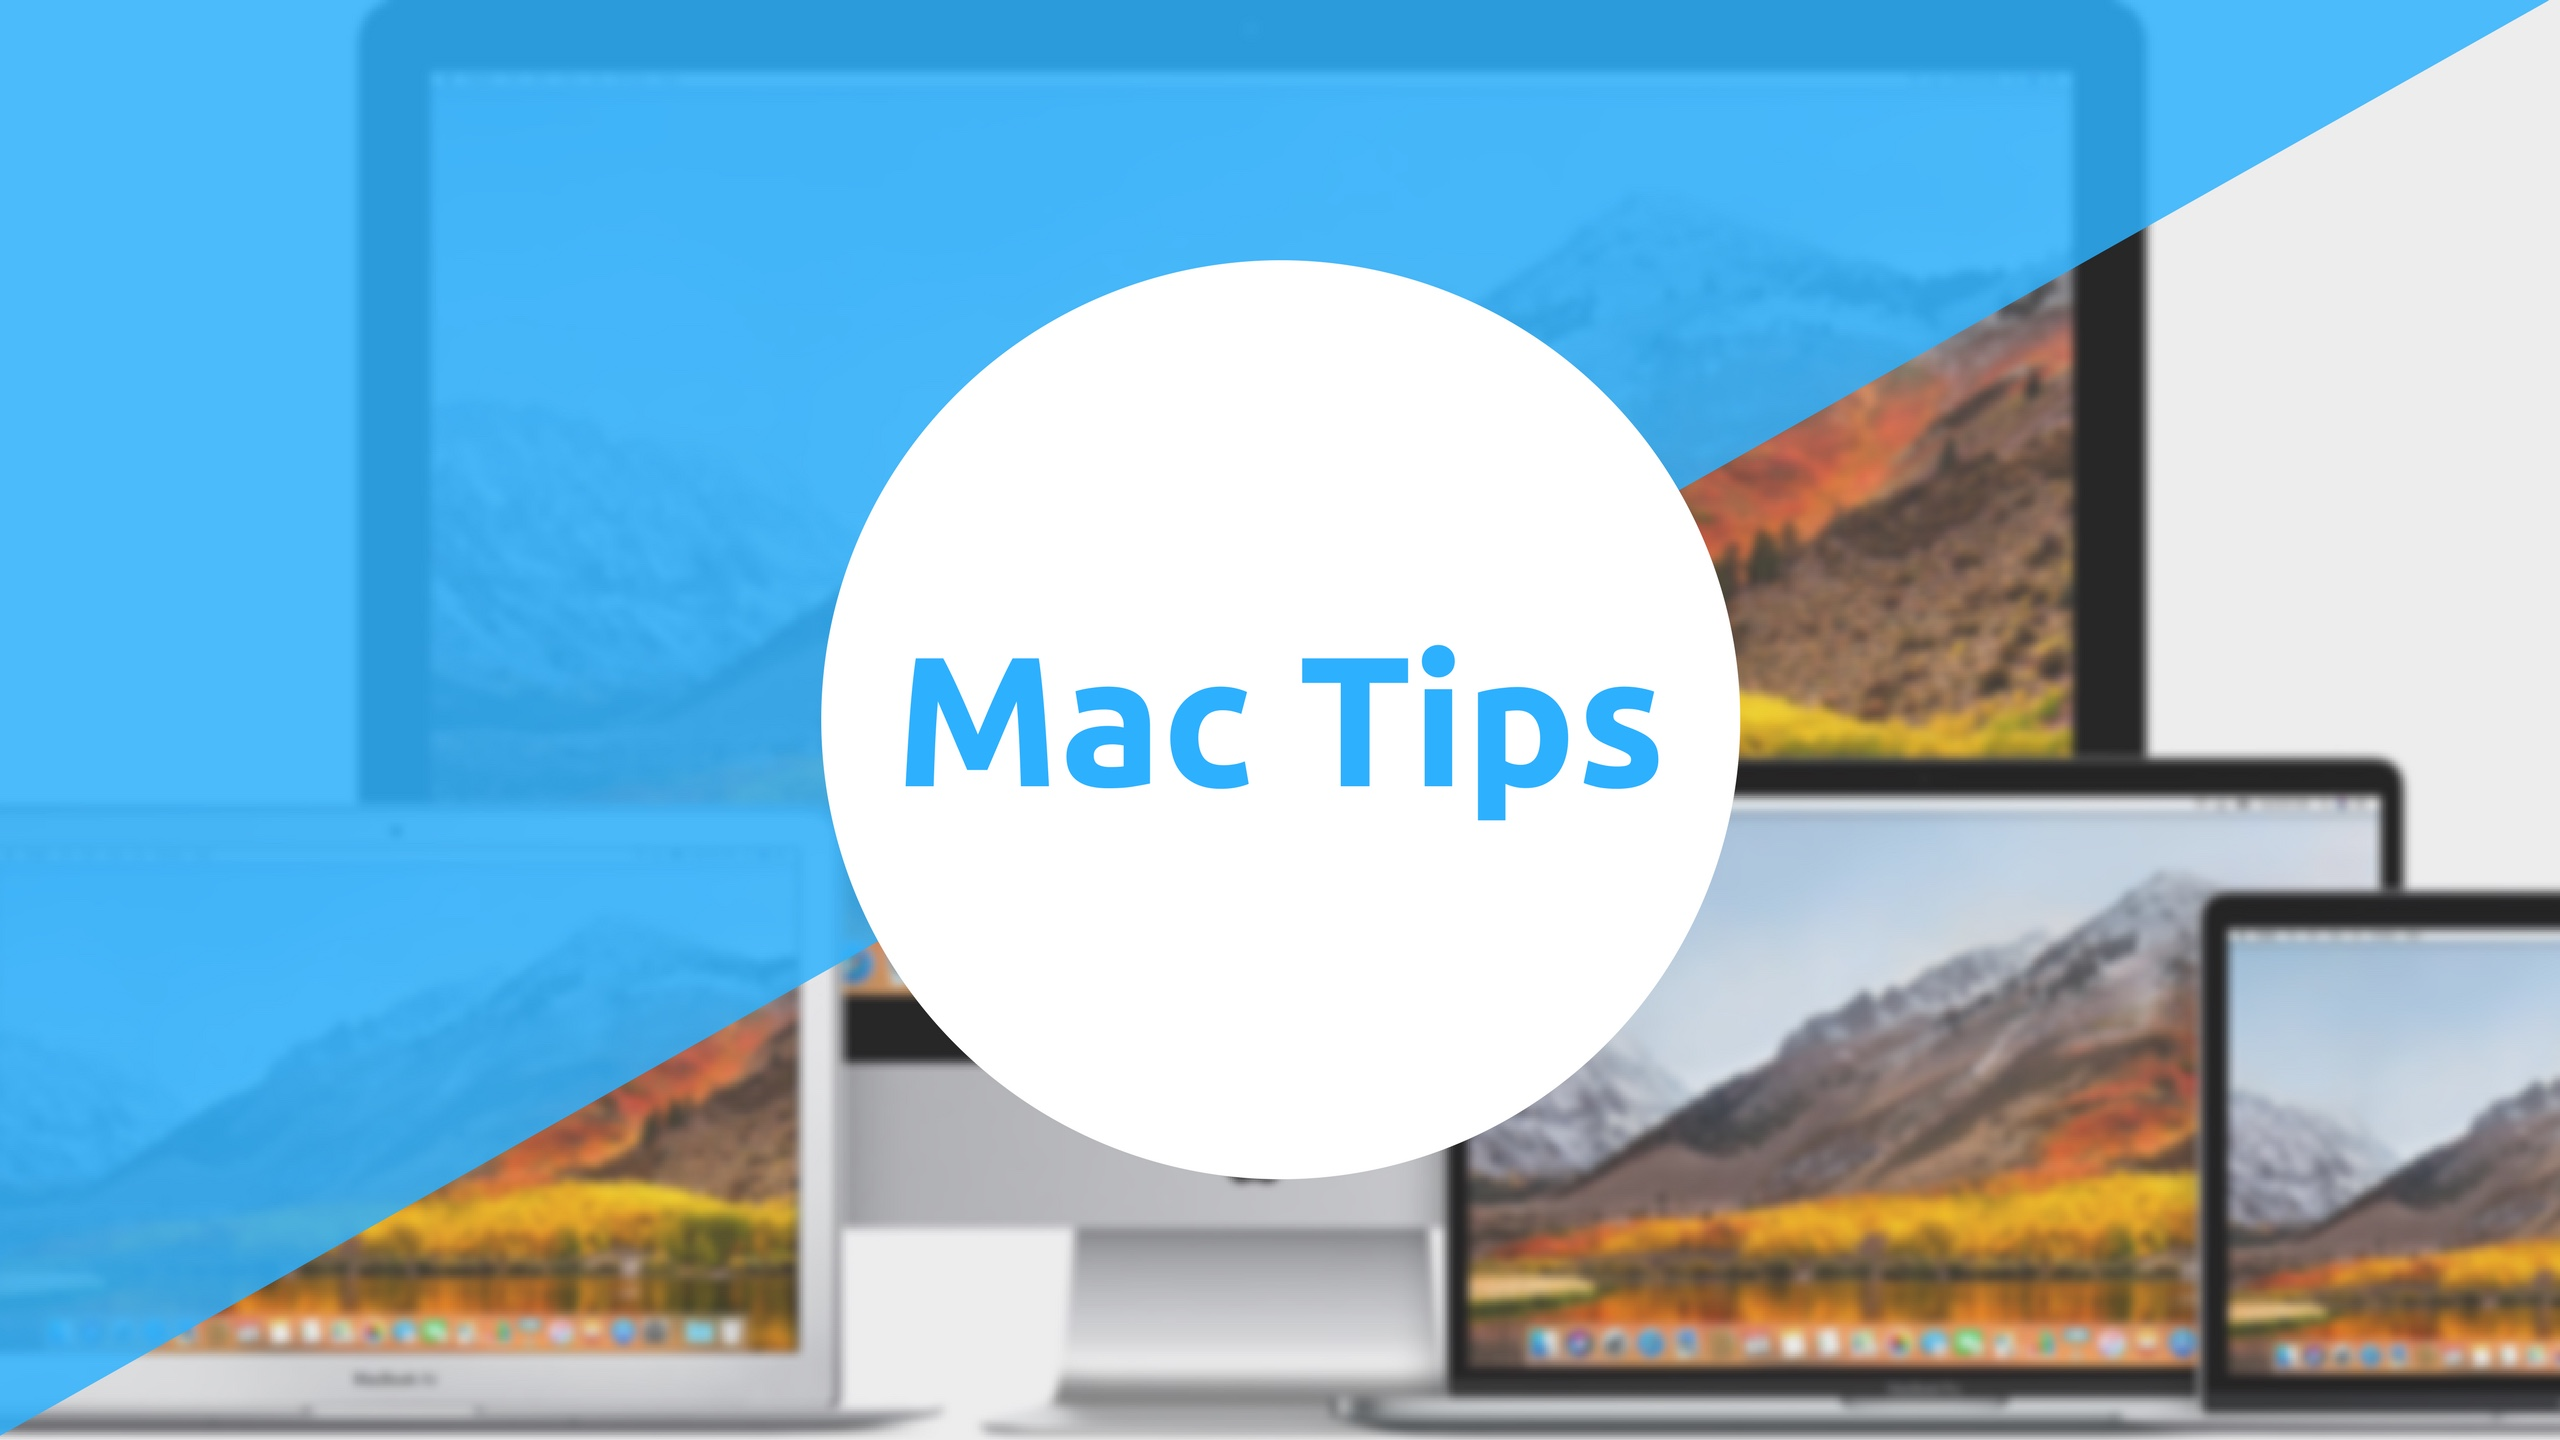 How to change the default name of screenshots on Mac